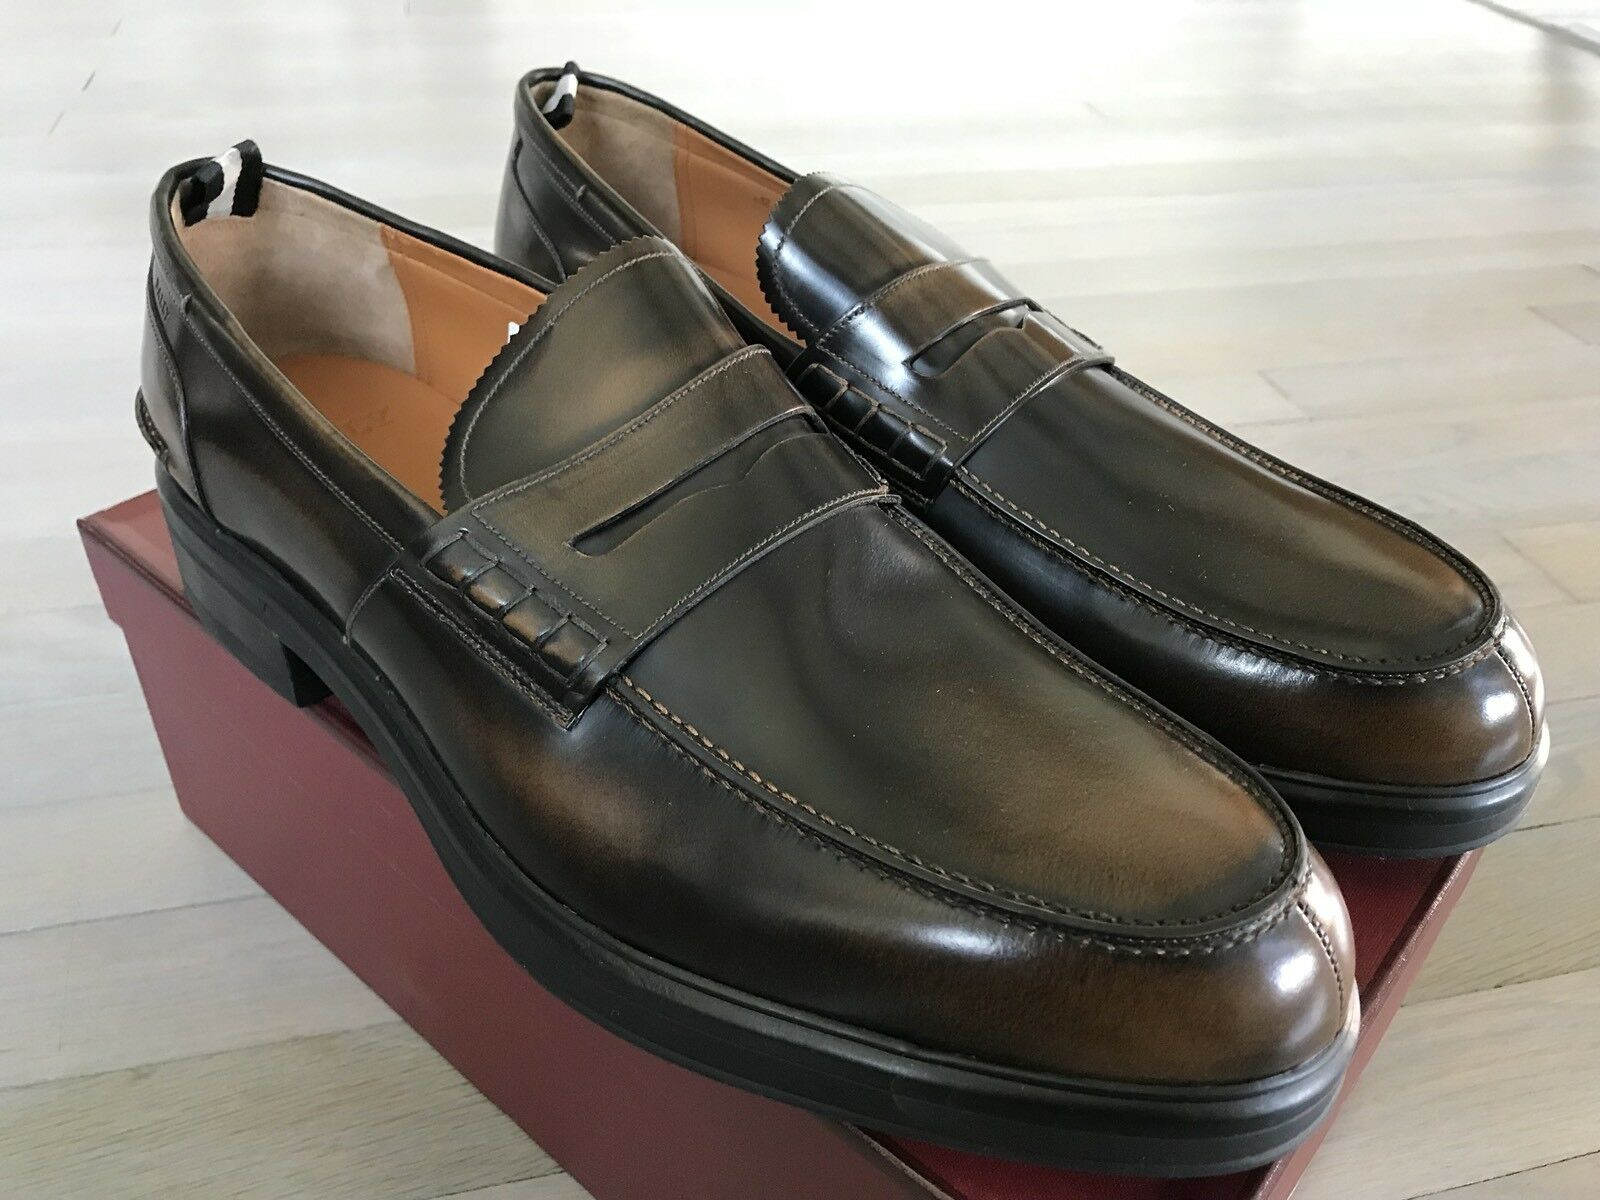 750  Bally Moby Honey Brushed Pelle Loafers Size US 13 Made in Switzerland